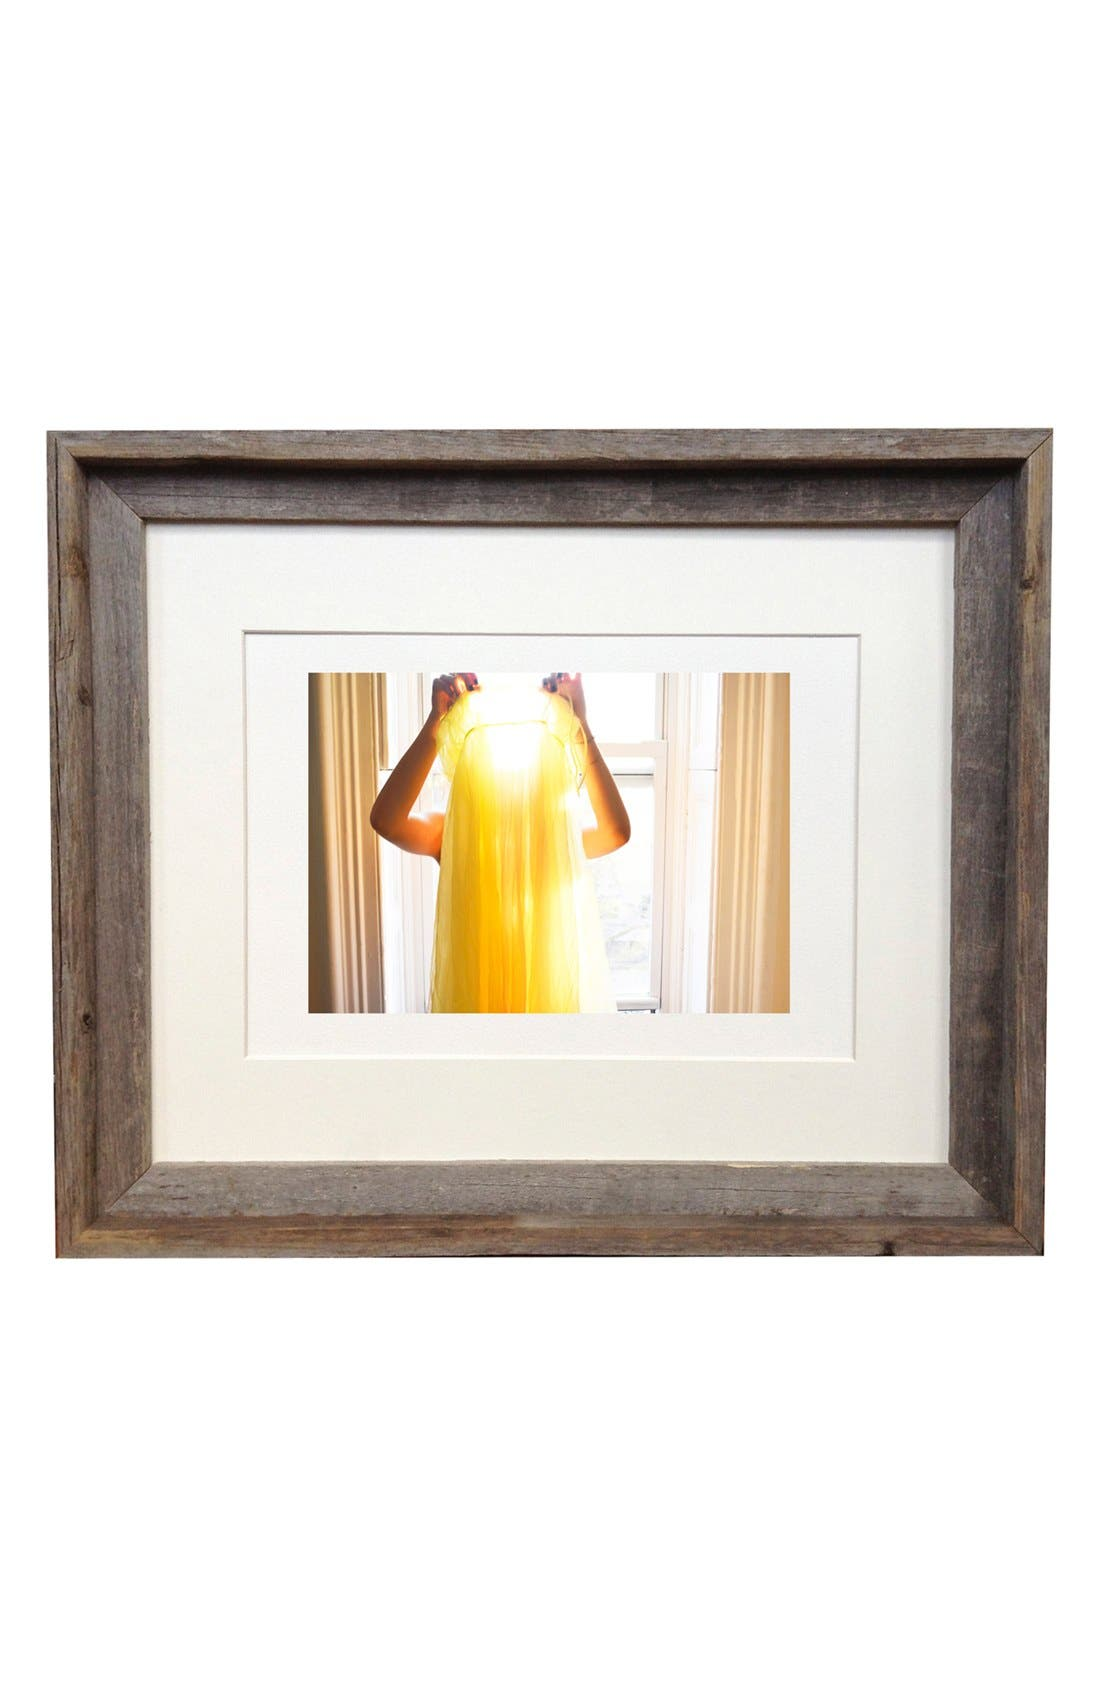 Alternate Image 1 Selected - She Hit Pause Studios 'Yellow Dress' Wall Art